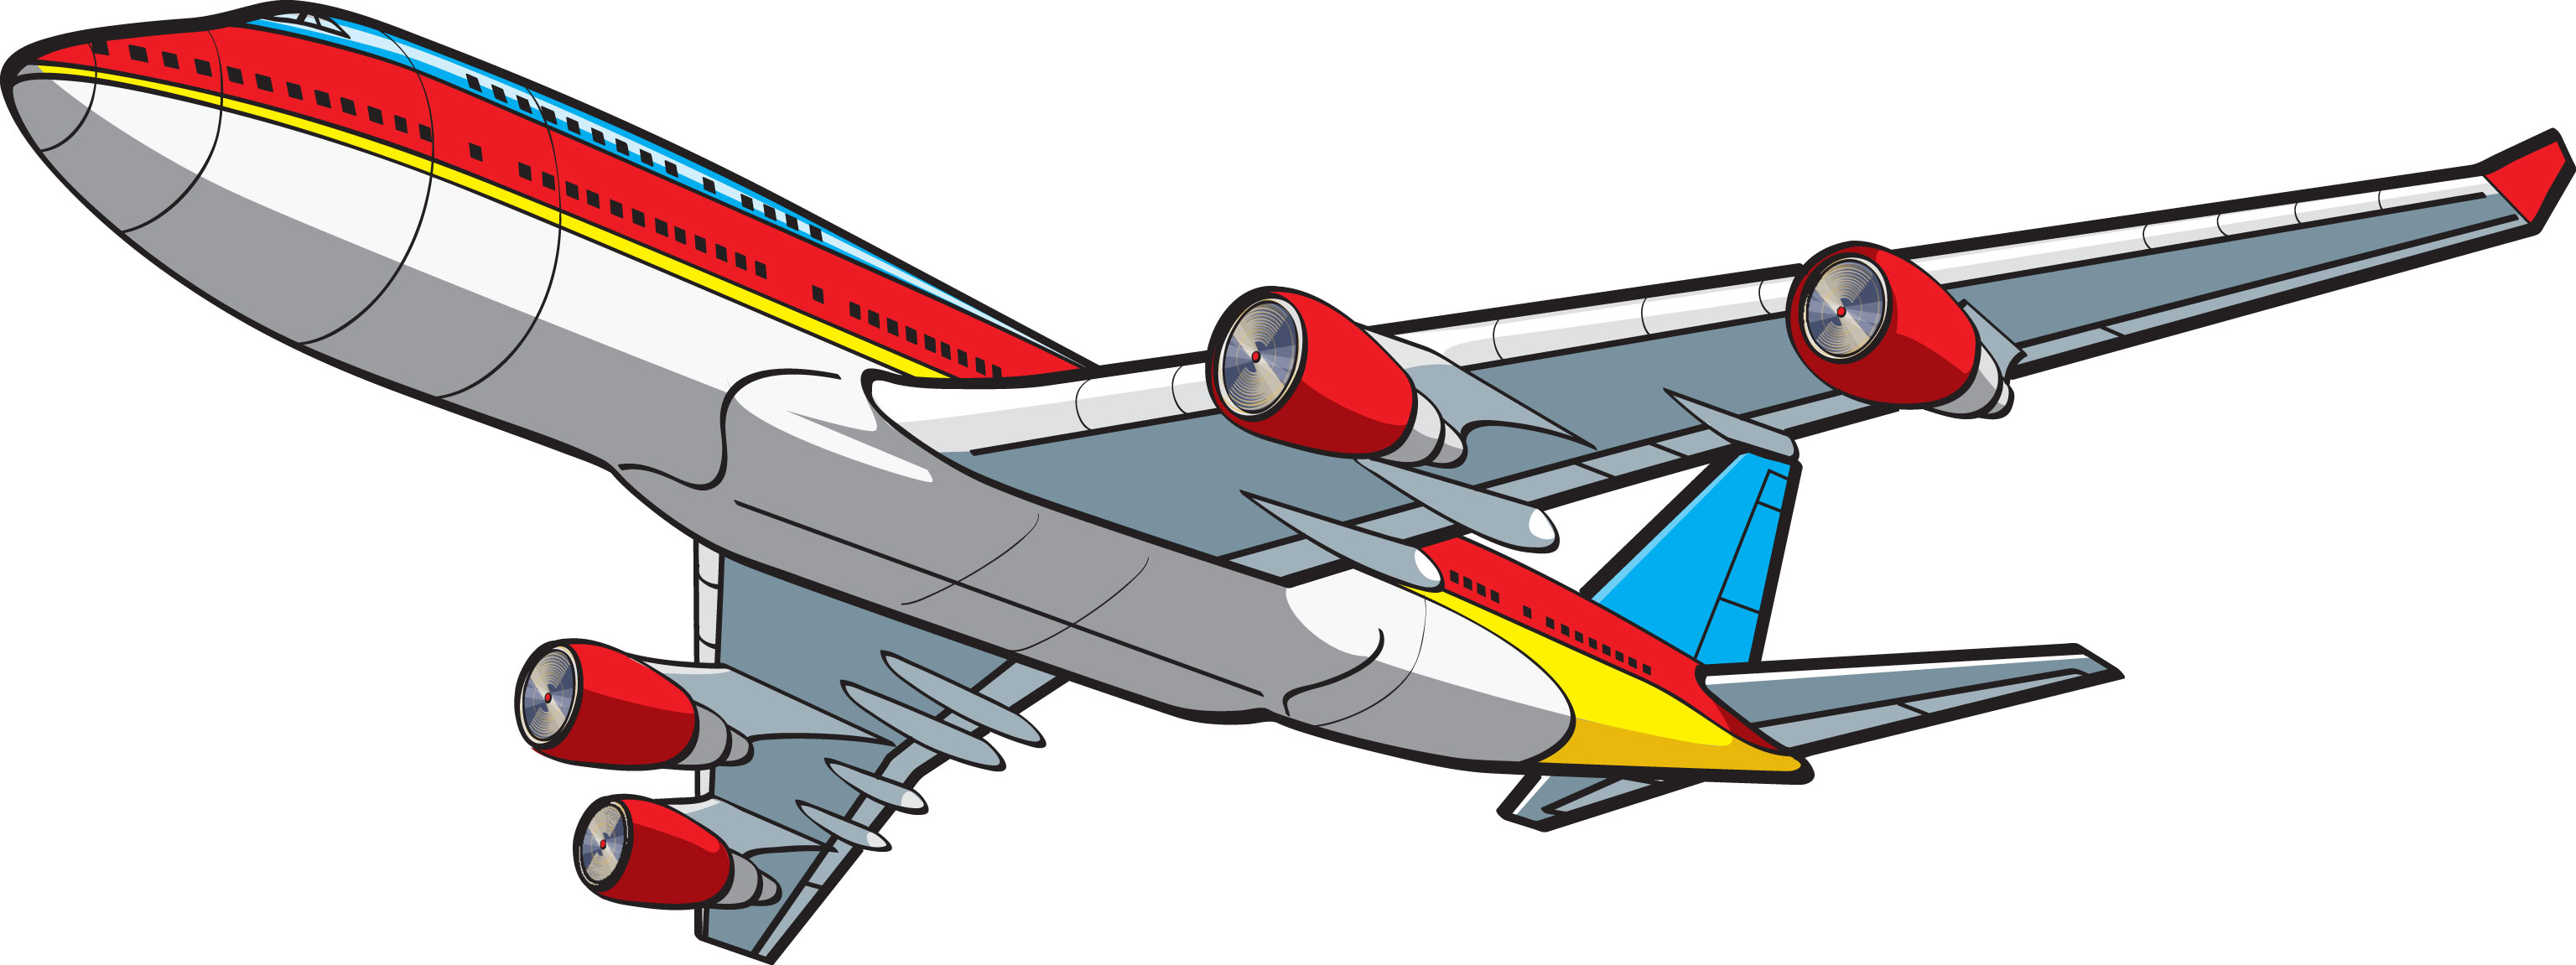 3072x1151 Airplane Clip Art Free 3